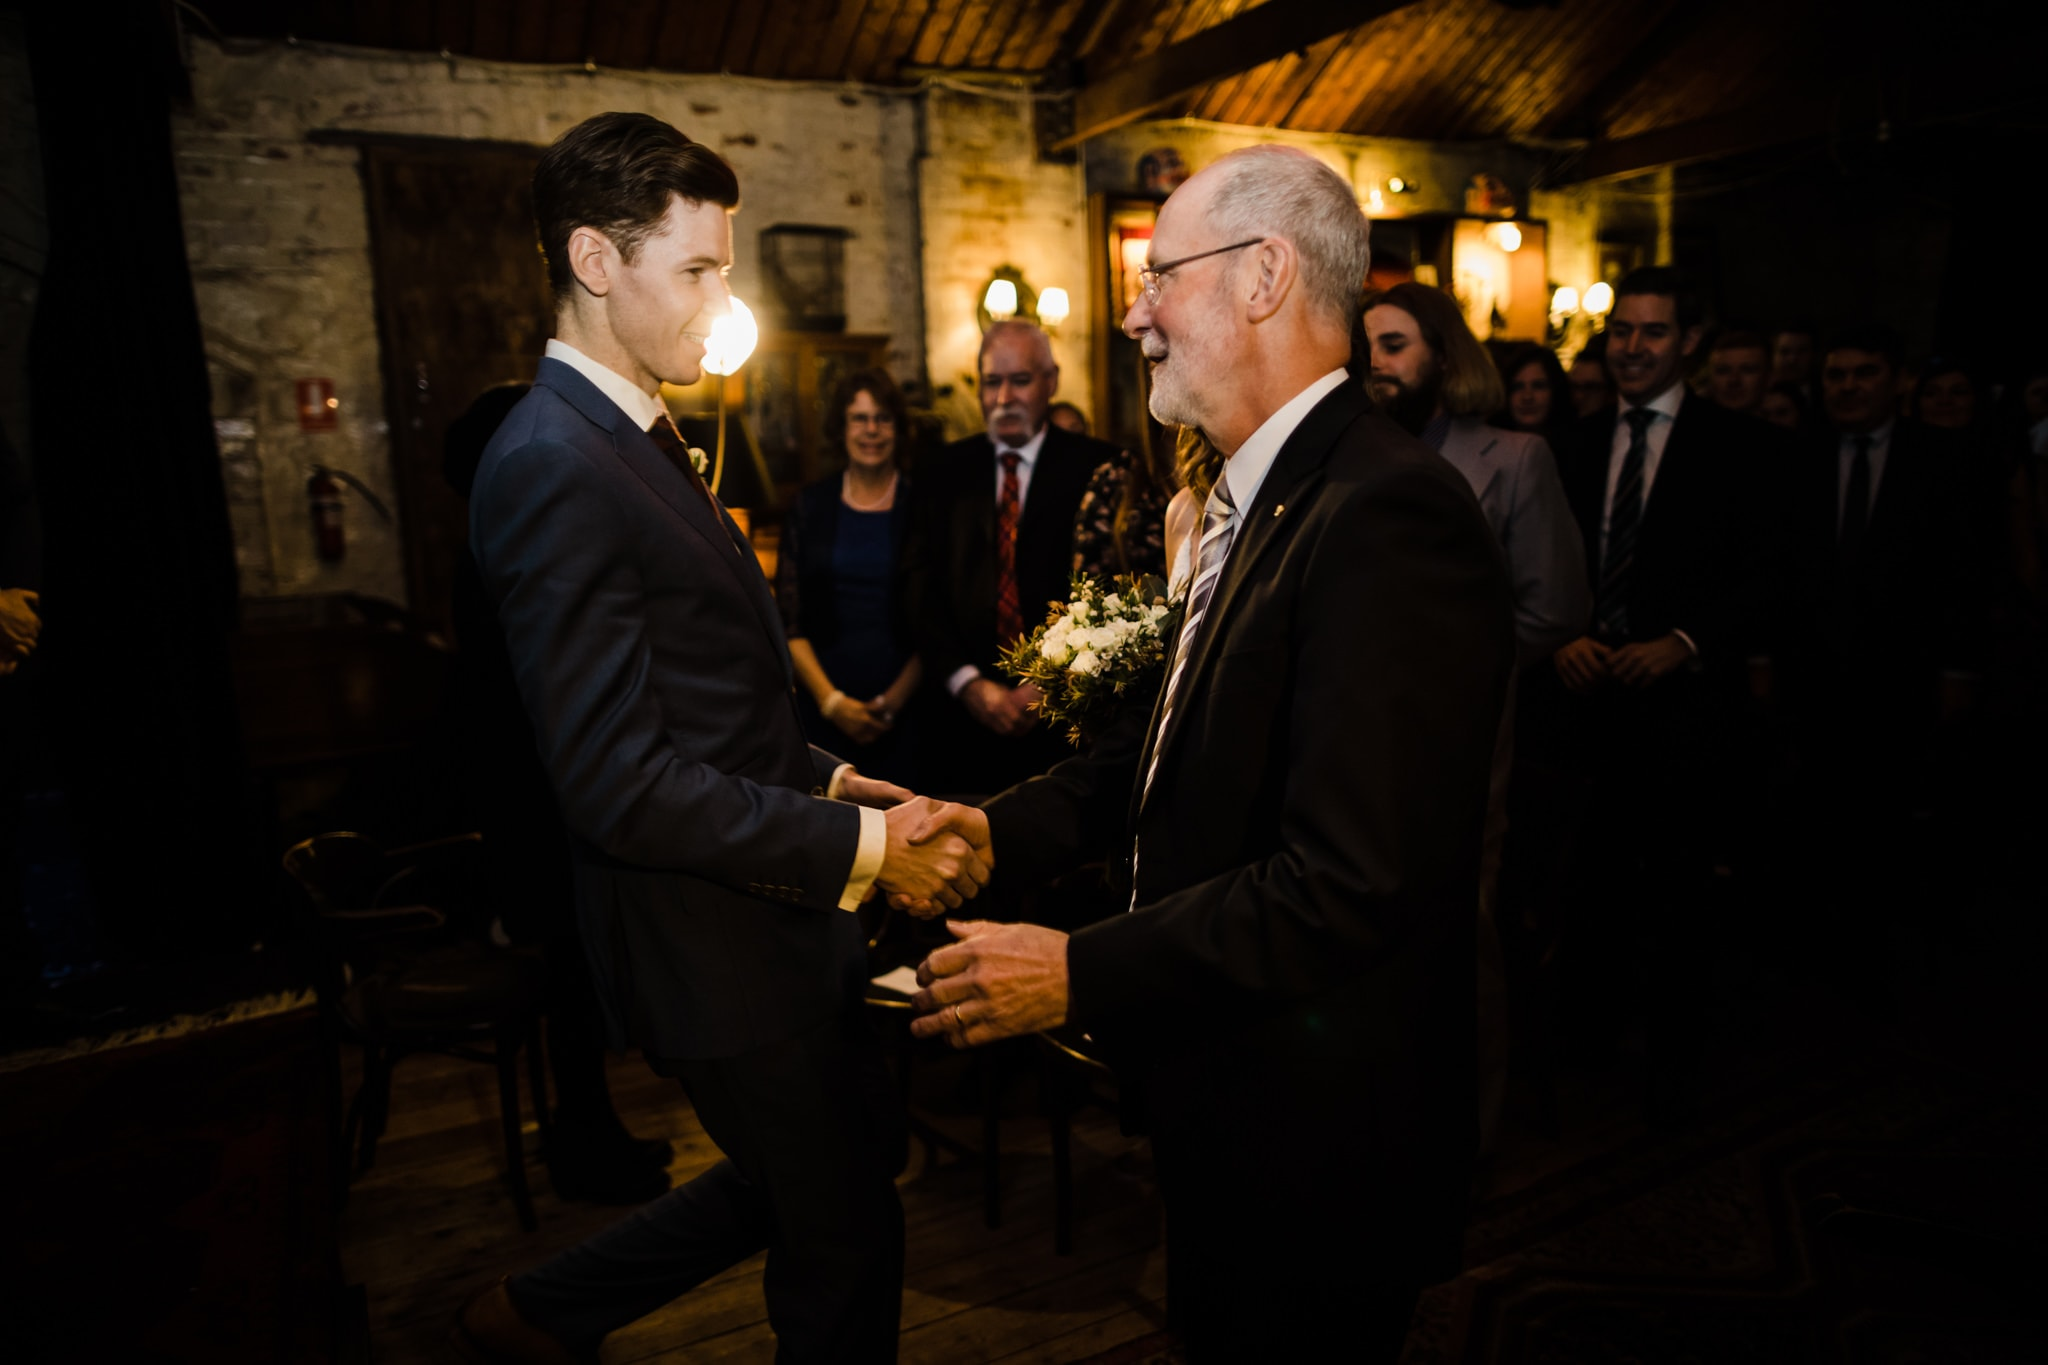 father welcomes the groom - moments of a wedding